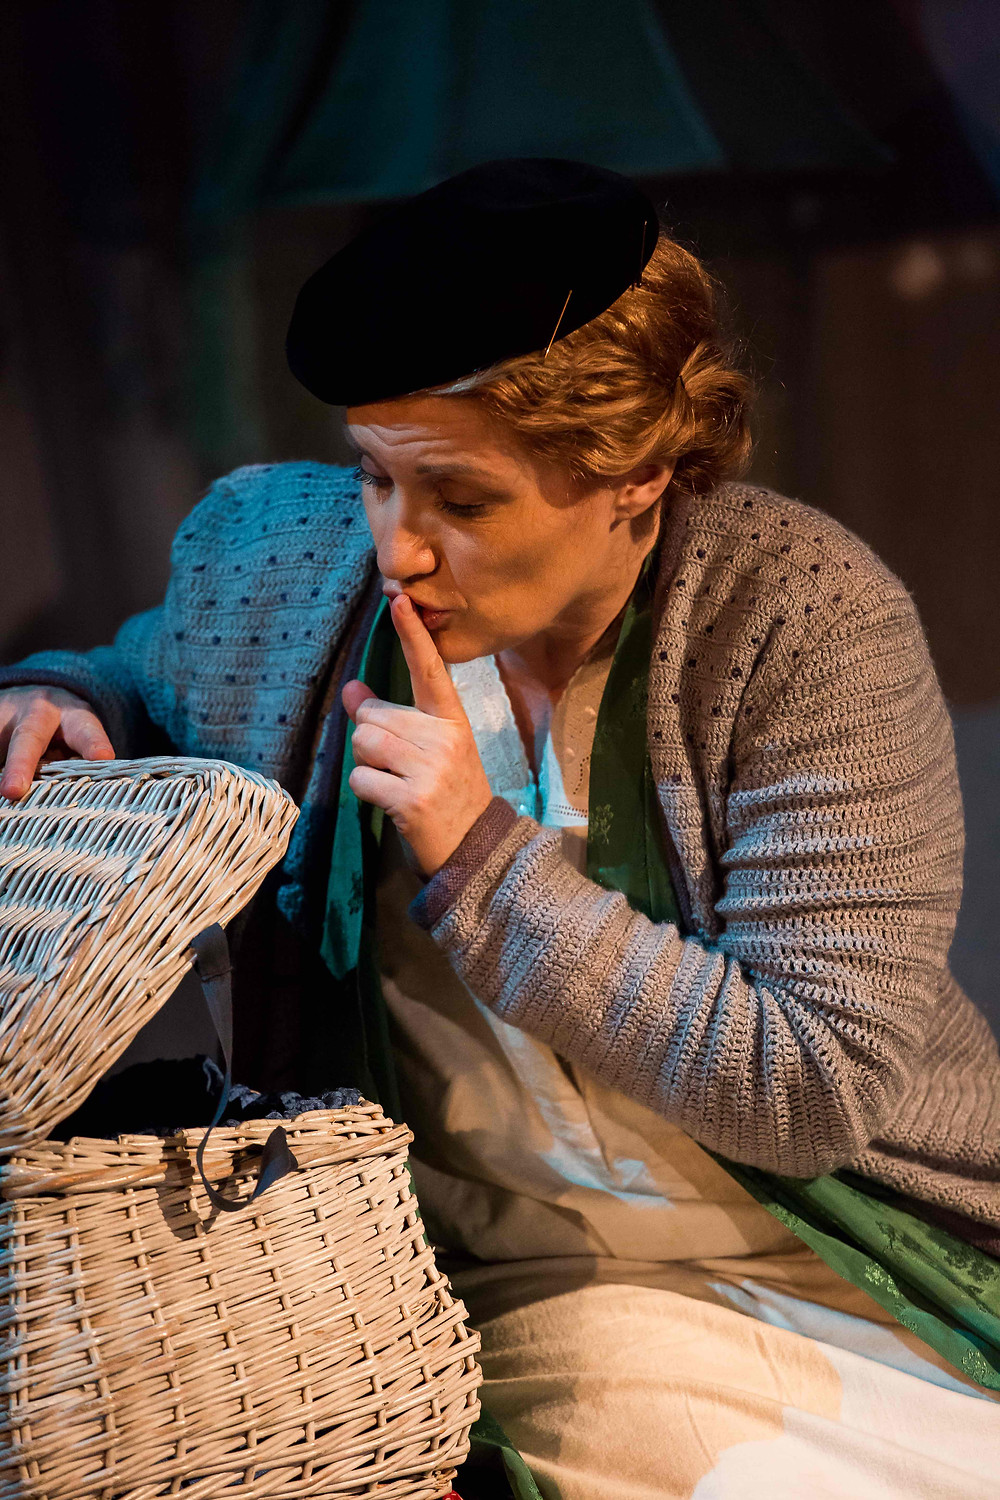 Joanne Roughton-Arnold as Iris. She is sitting next to a white wicker sewing basket, gently lifting the lid and putting her left index finger to her lips in a gesture to quieten the baby she imagines is in the basket. Her copper hair is twisted into a low bun under a black beret. She wears a grey cardigan over a green kimono robe and white nightdress